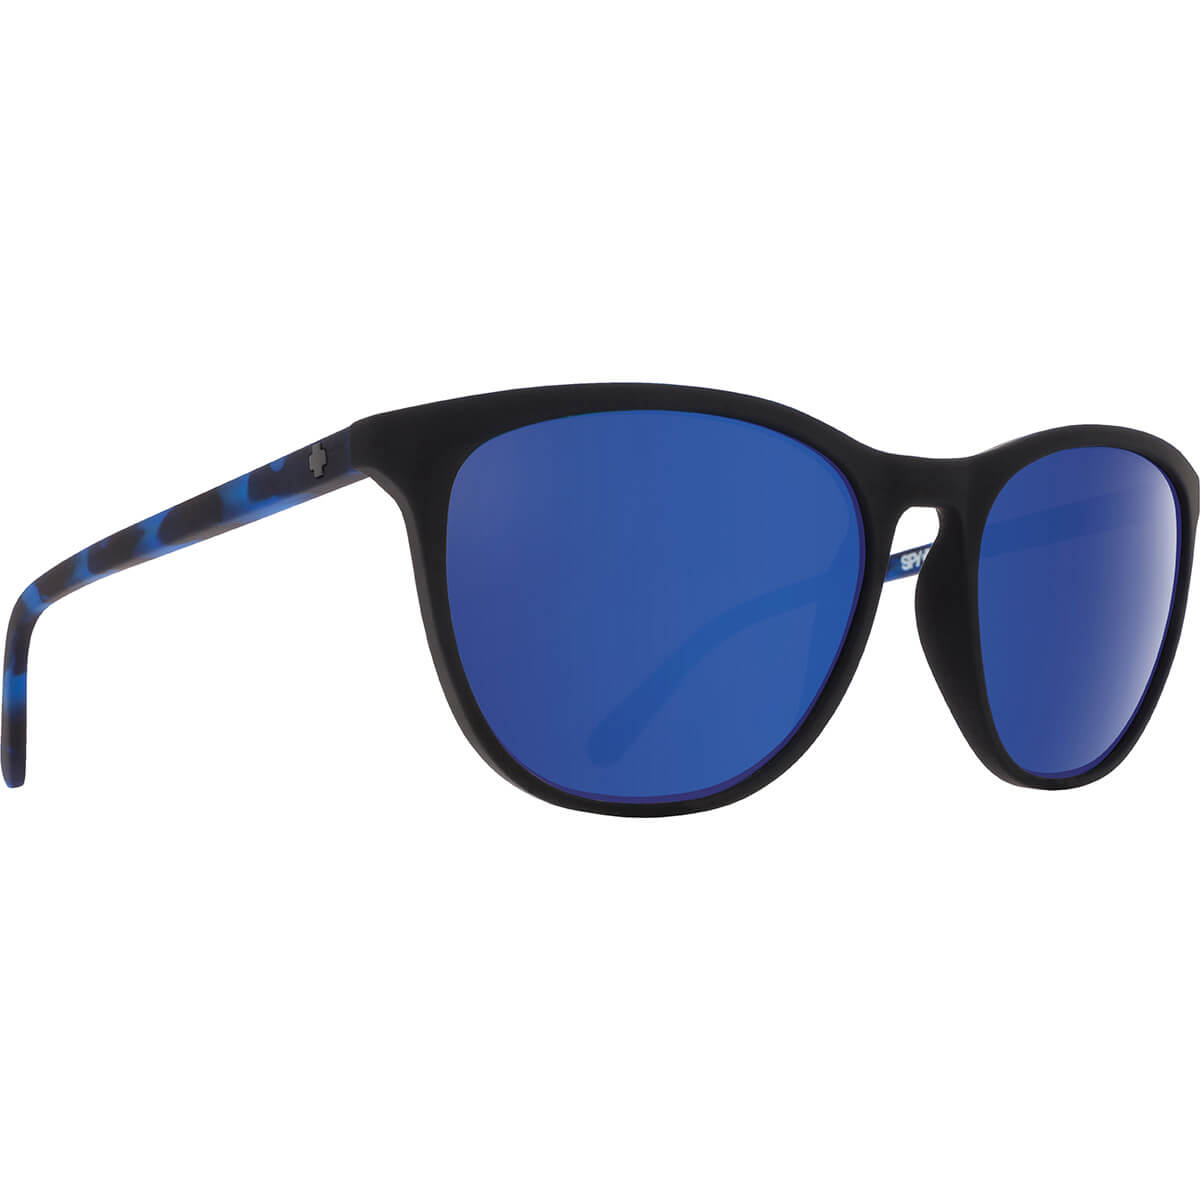 <30%OFF!!> SPY SUNGLASSES スパイ サングラス CAMEO カメオ SOFT MATTE BLACK/NAVY TORT - HAPPY GRAY GREEN w/ DARK BLUE SPECTRA 673373845503